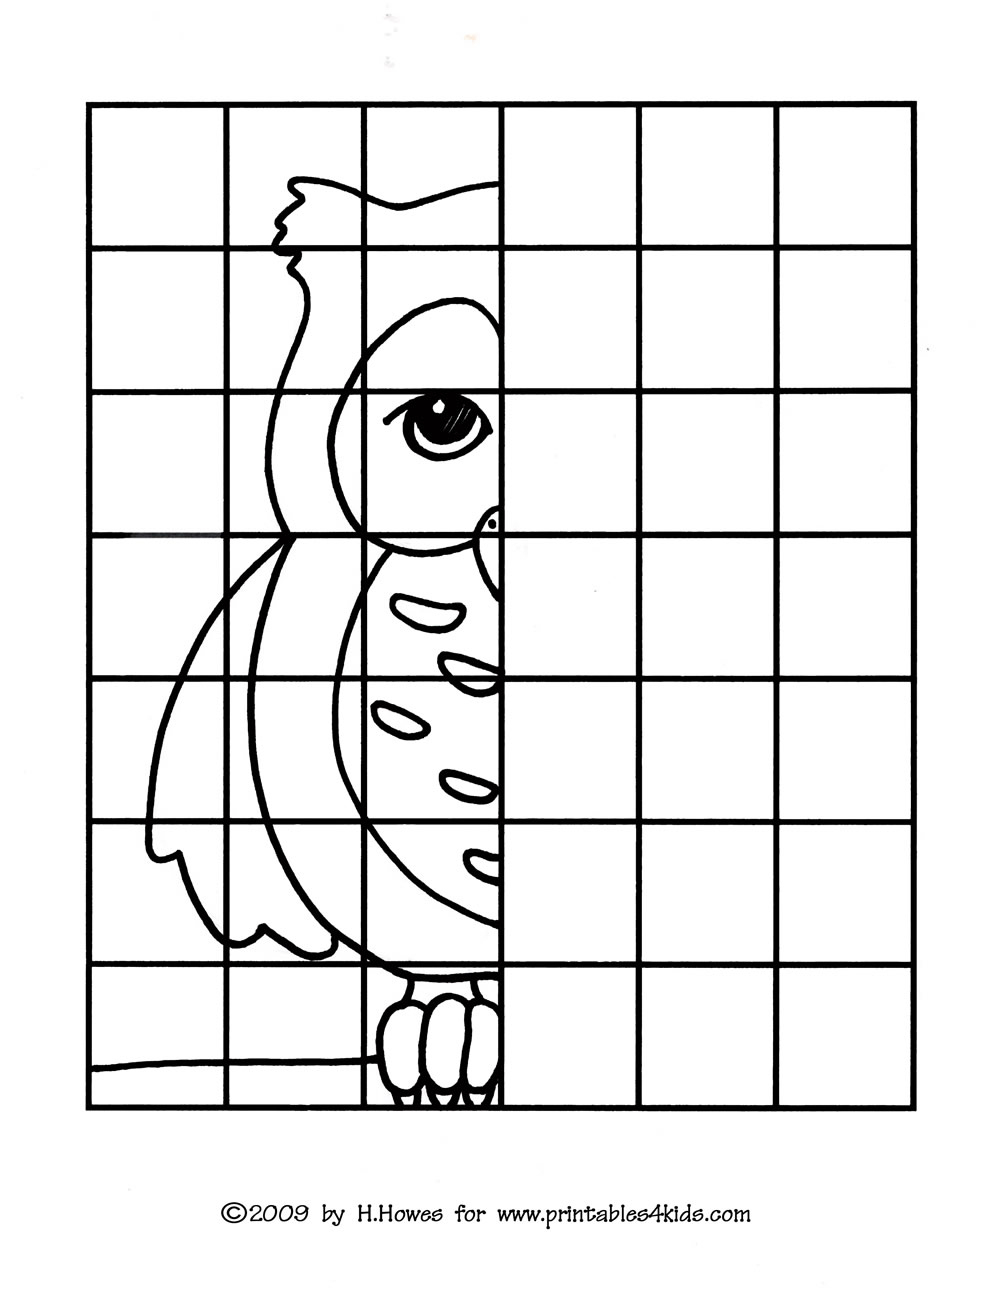 Owl Complete The Picture Drawing : Printables For Kids – Free Word - Printable Pencil Puzzles